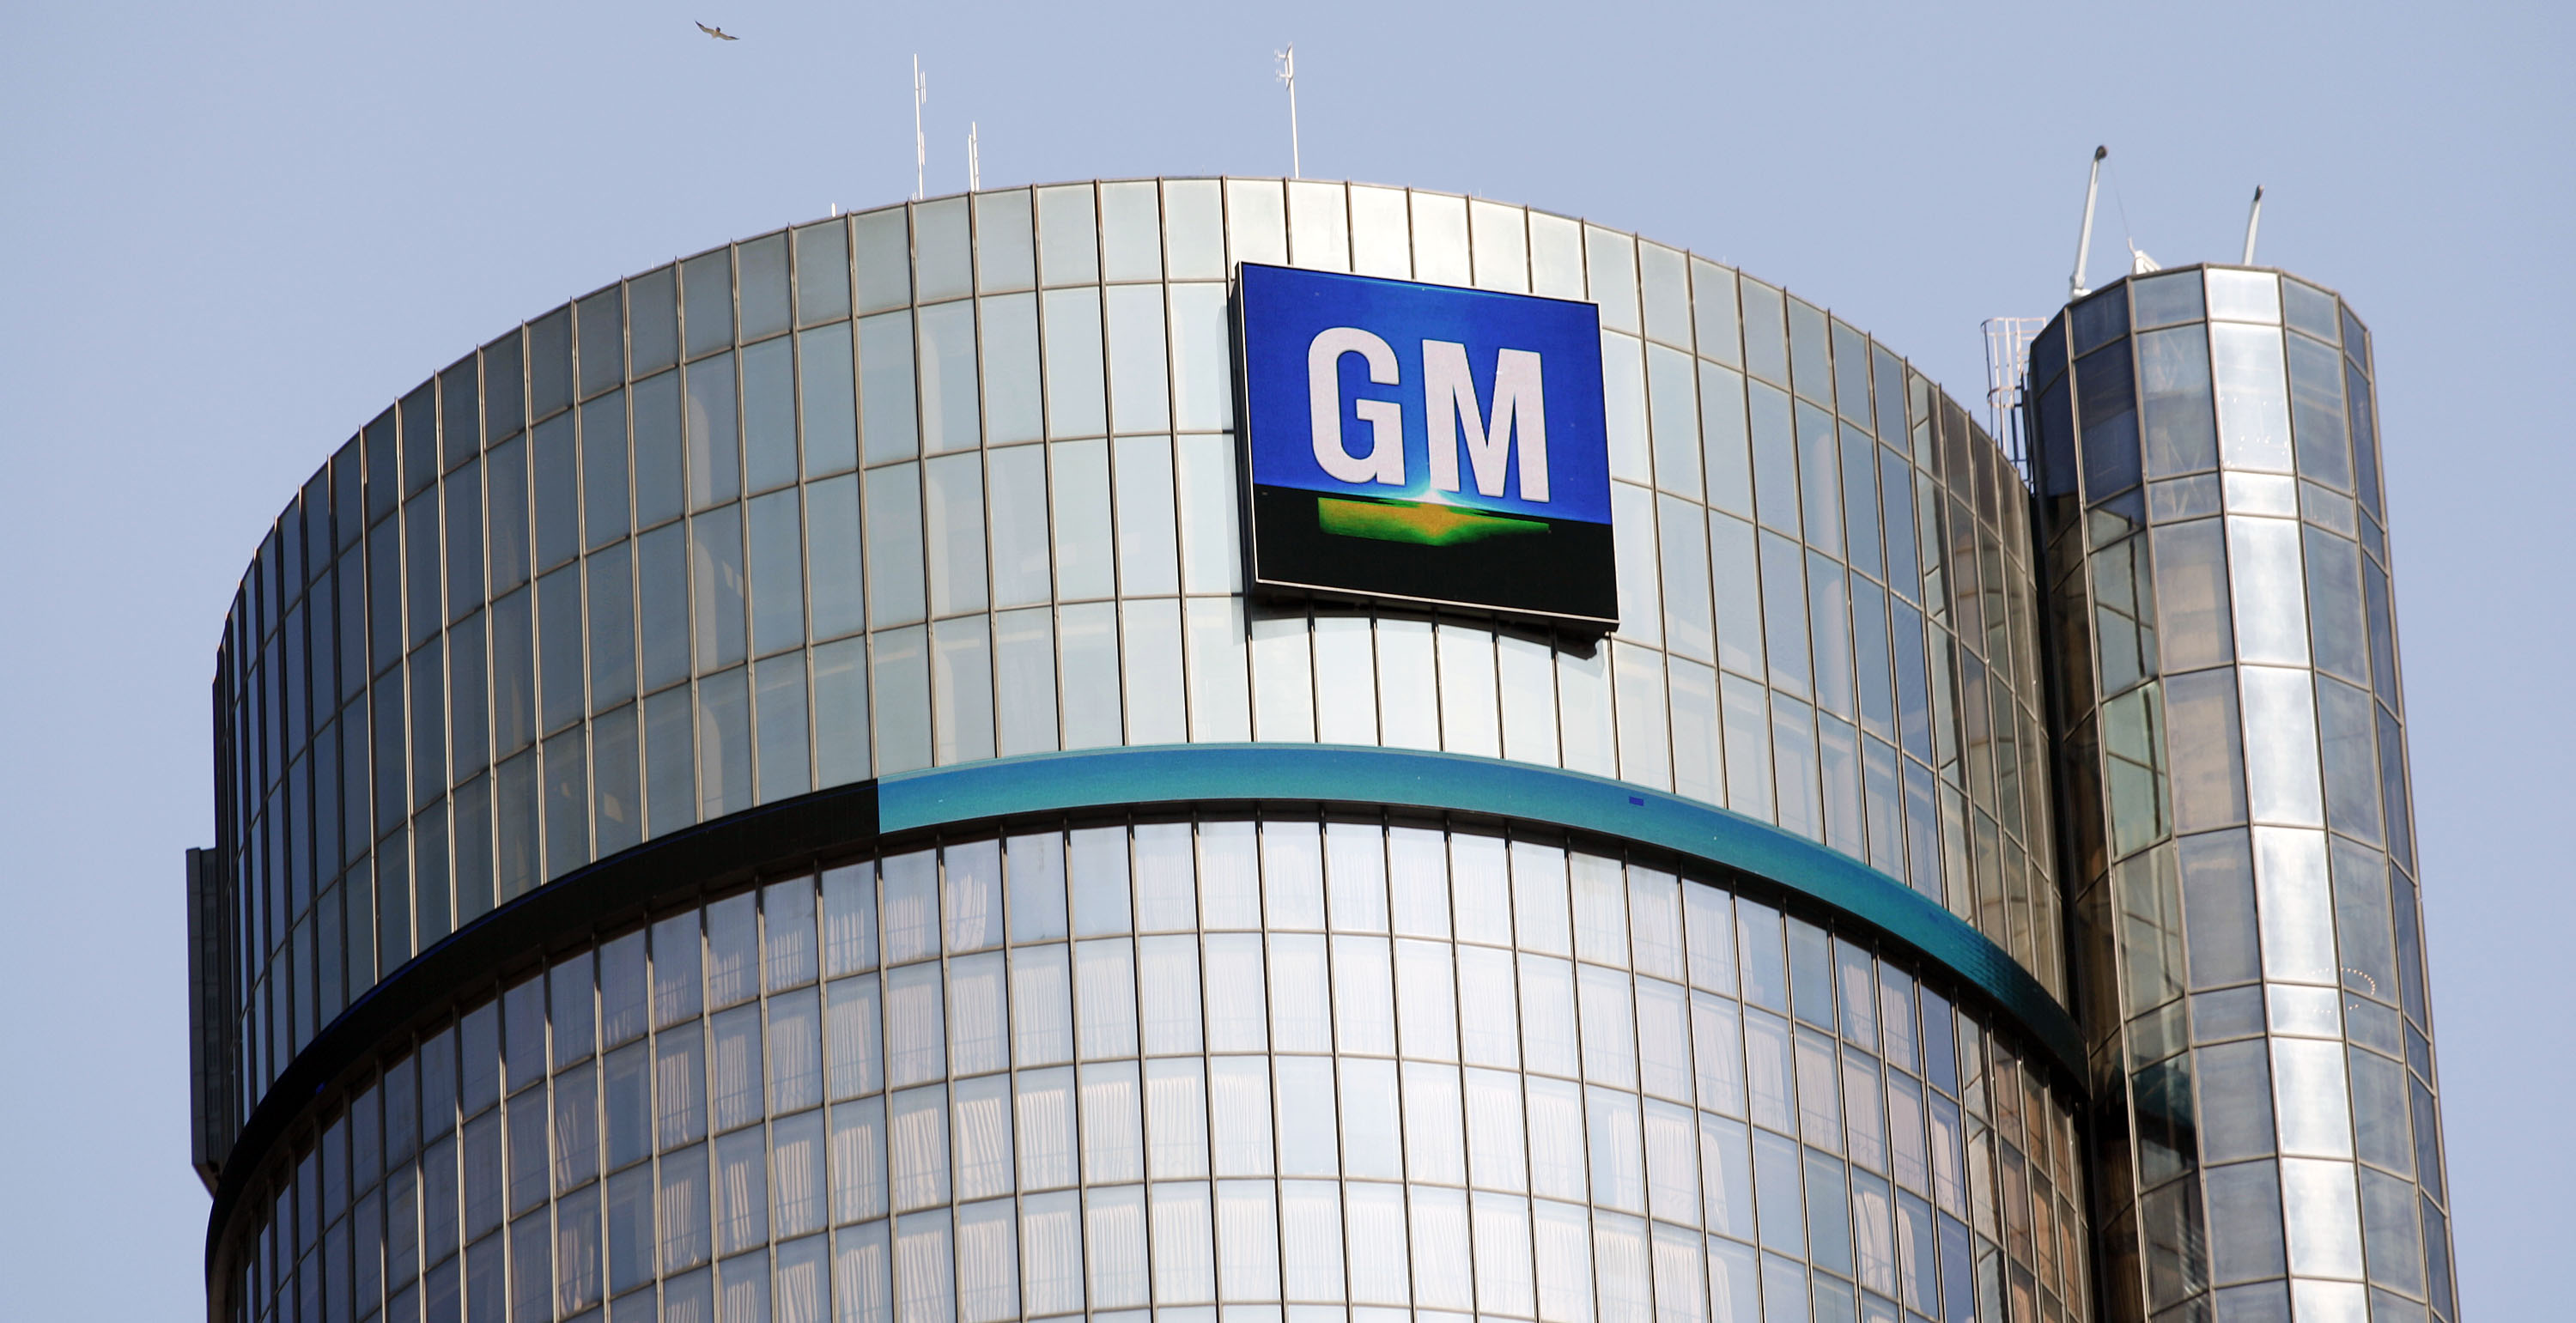 The General Motors logo is seen on the world headquarters in Detroit, Michigan